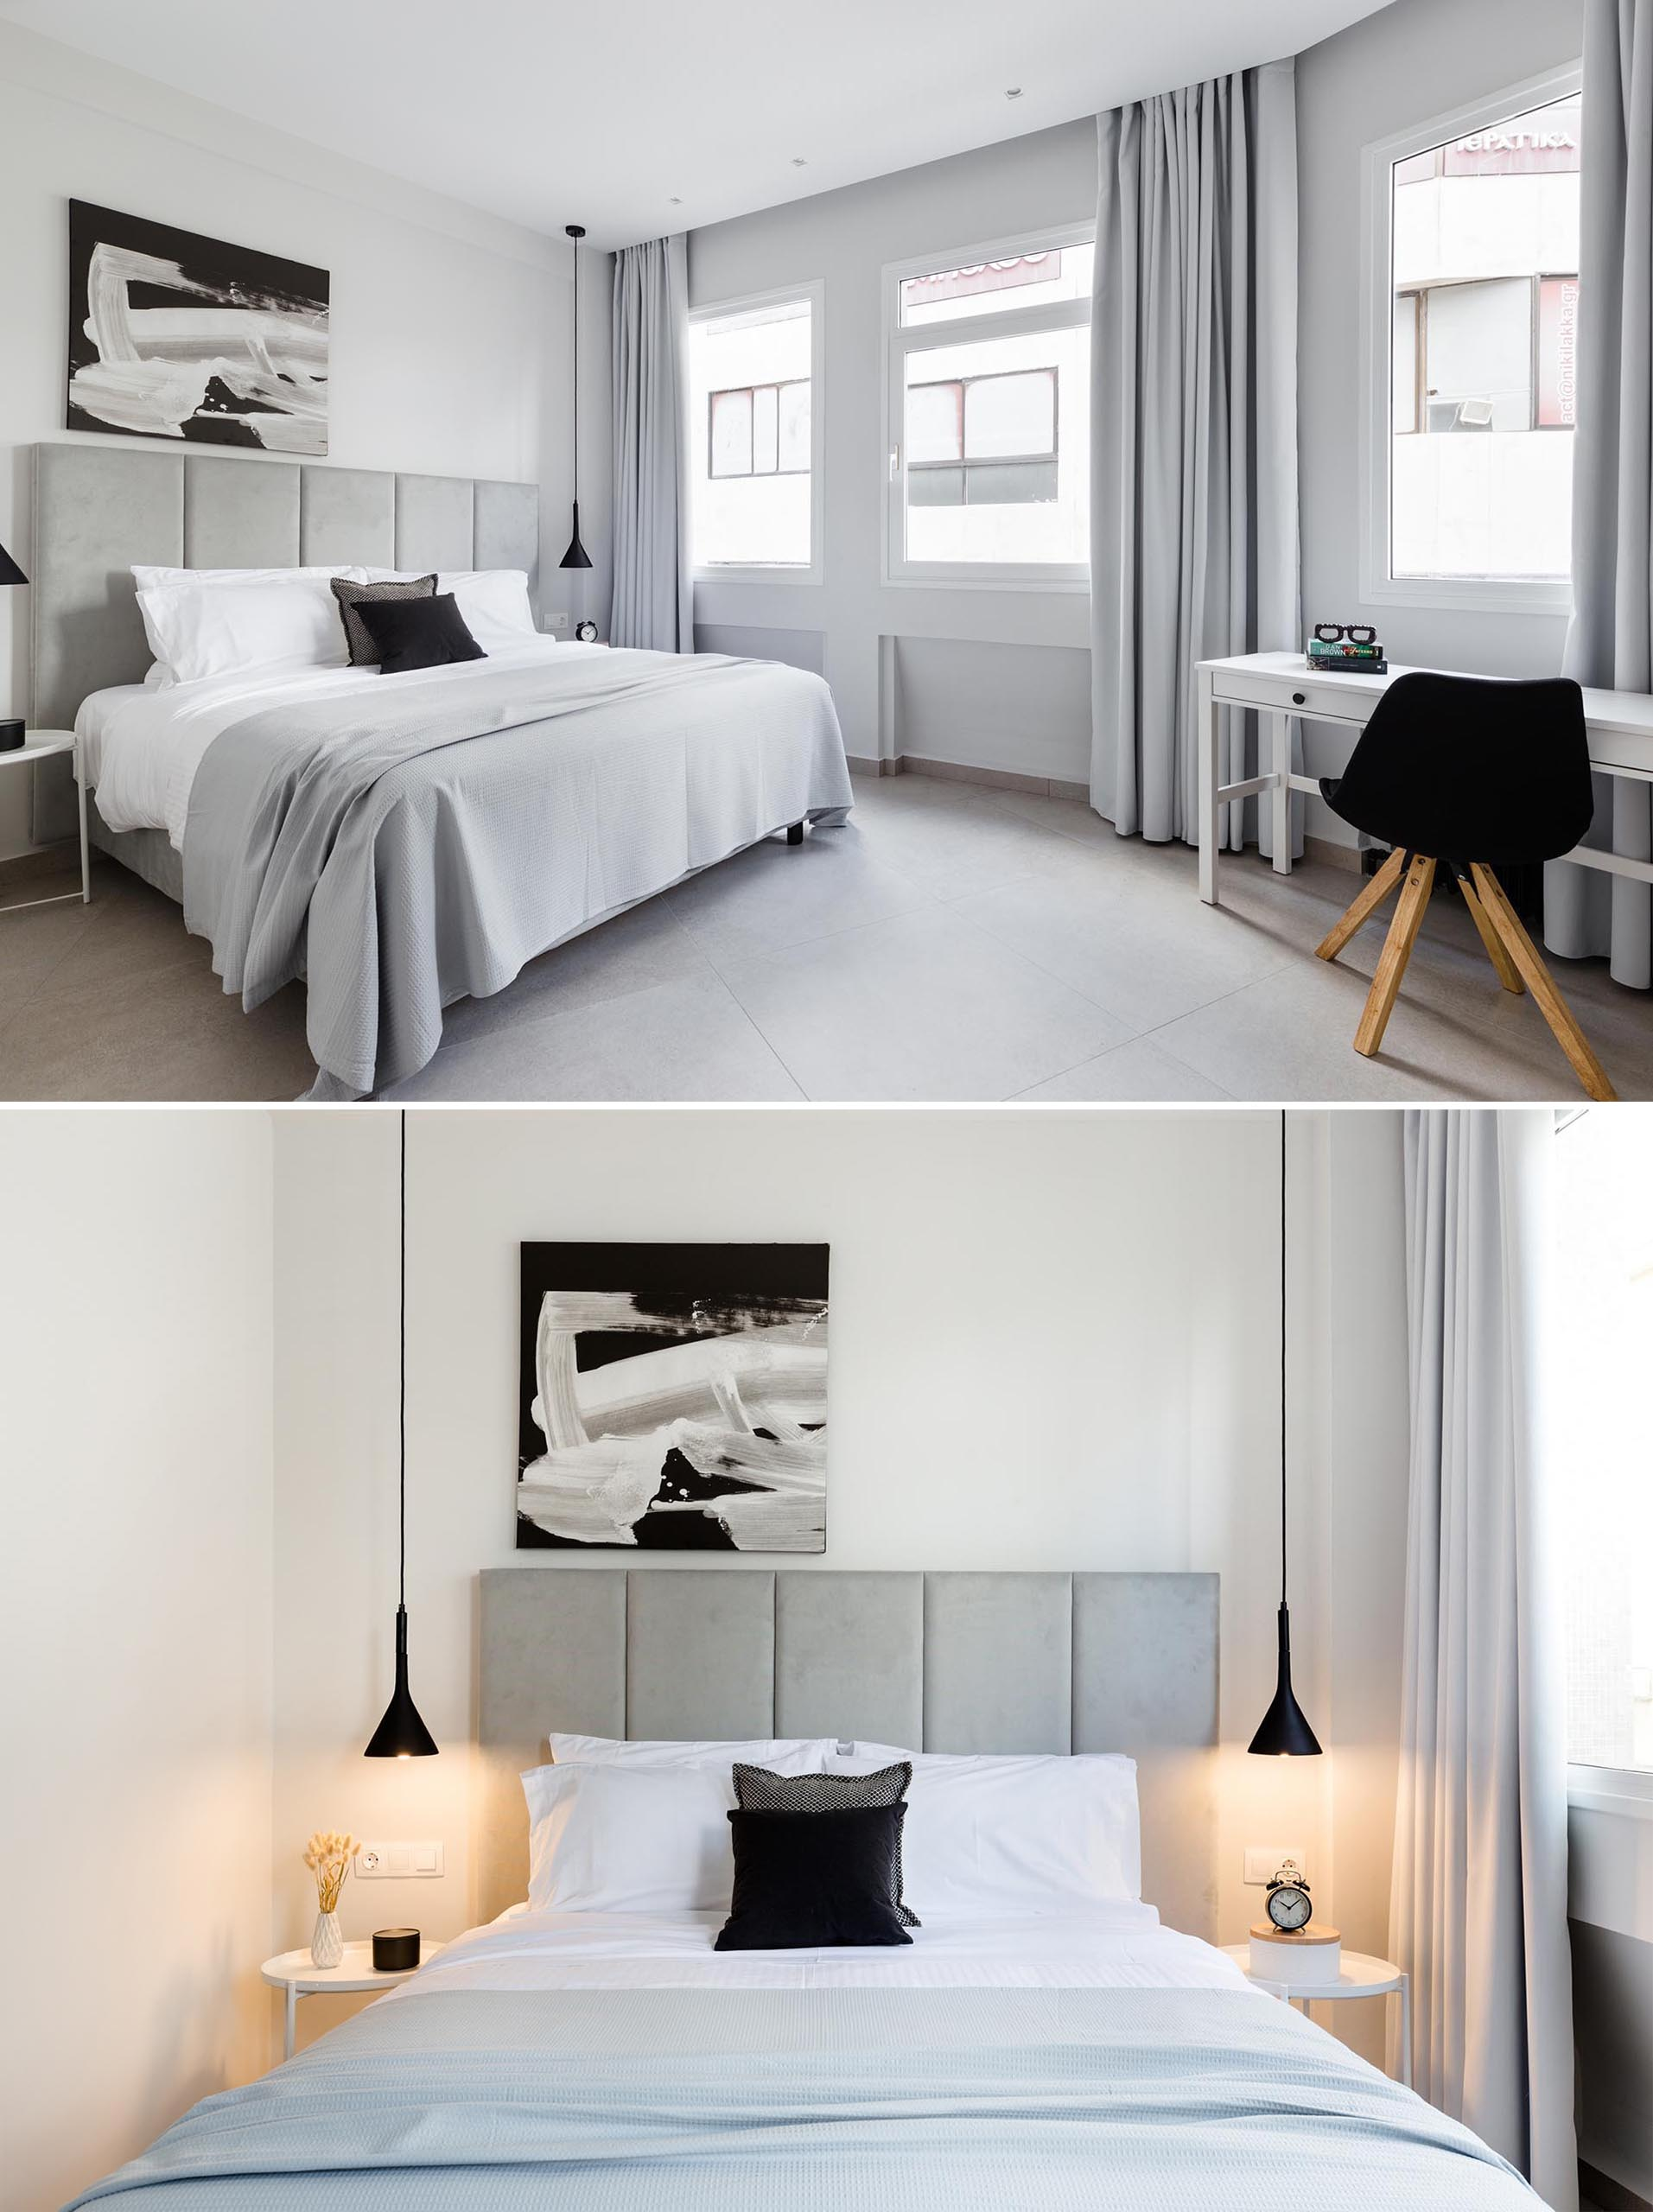 A modern bedroom where the color palette is filled with grays, black and white. At night, the pendant lights beside the bed add a warm glow.